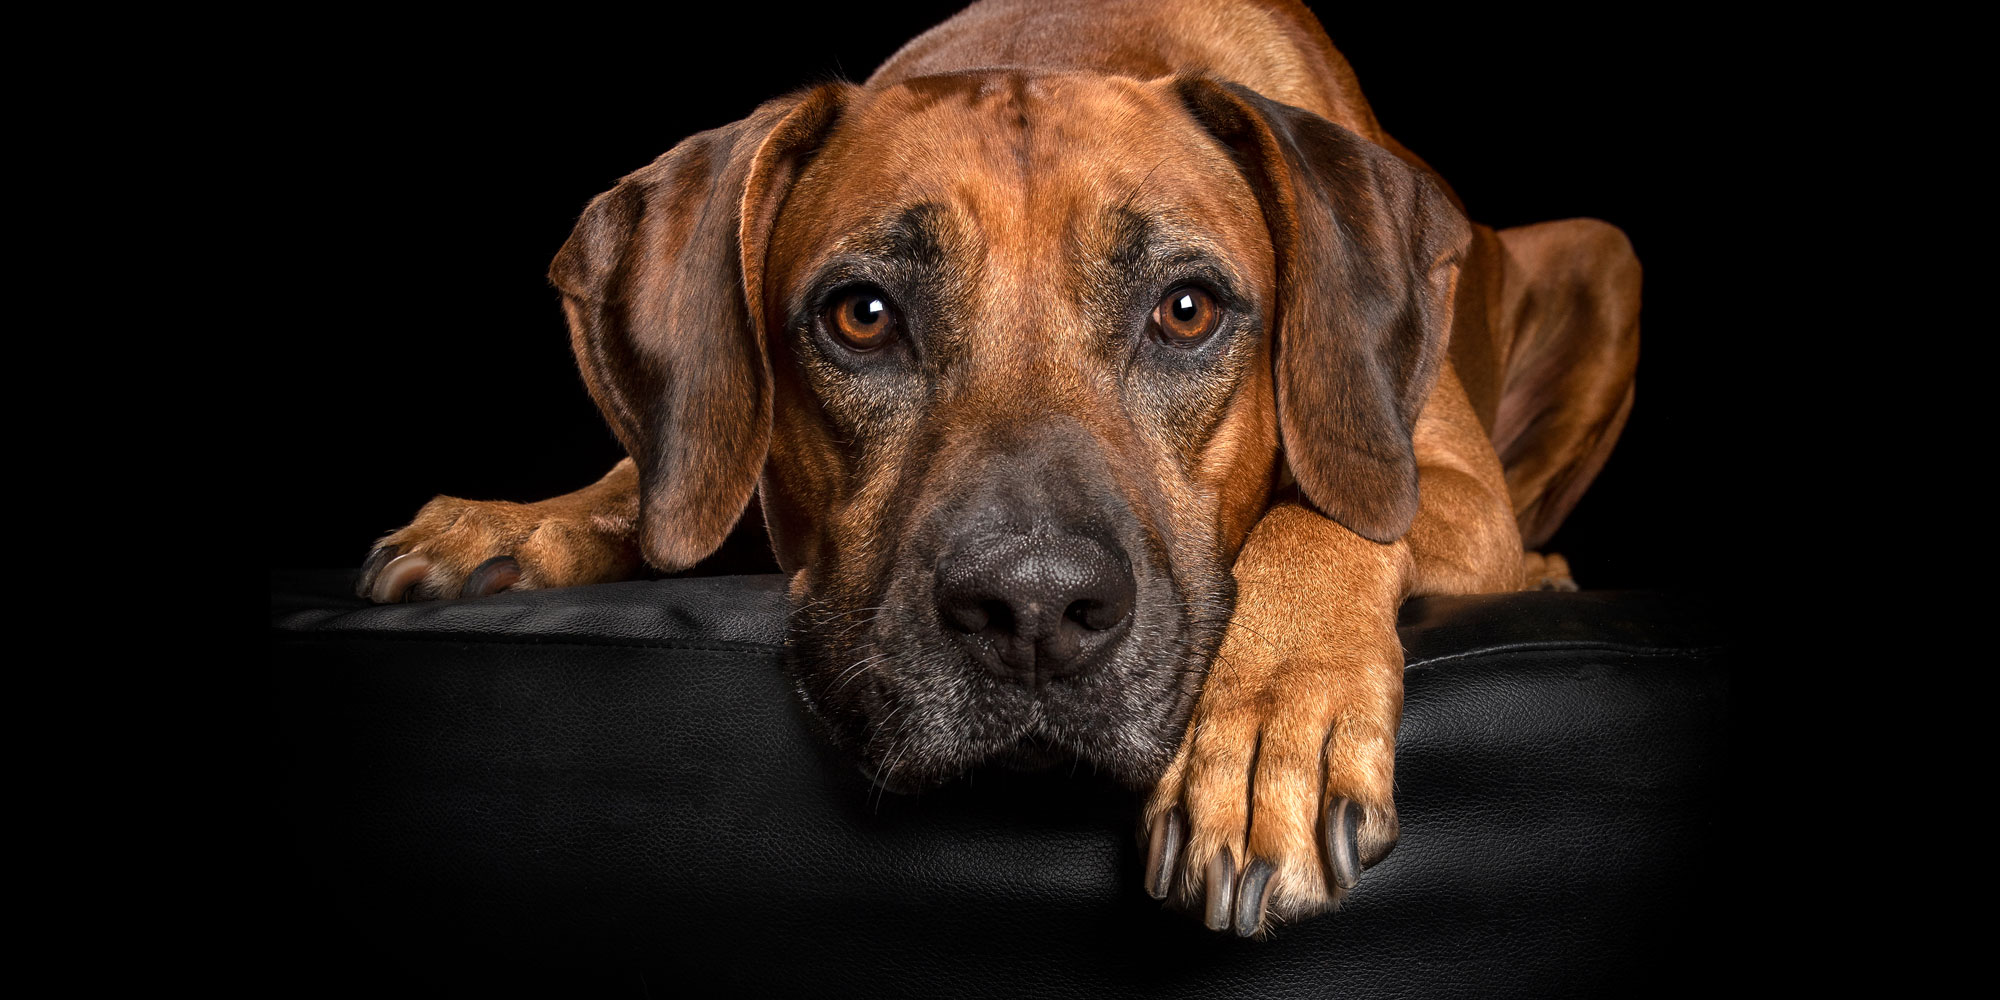 tan ridgeback boy with soulful eyes and head between paws